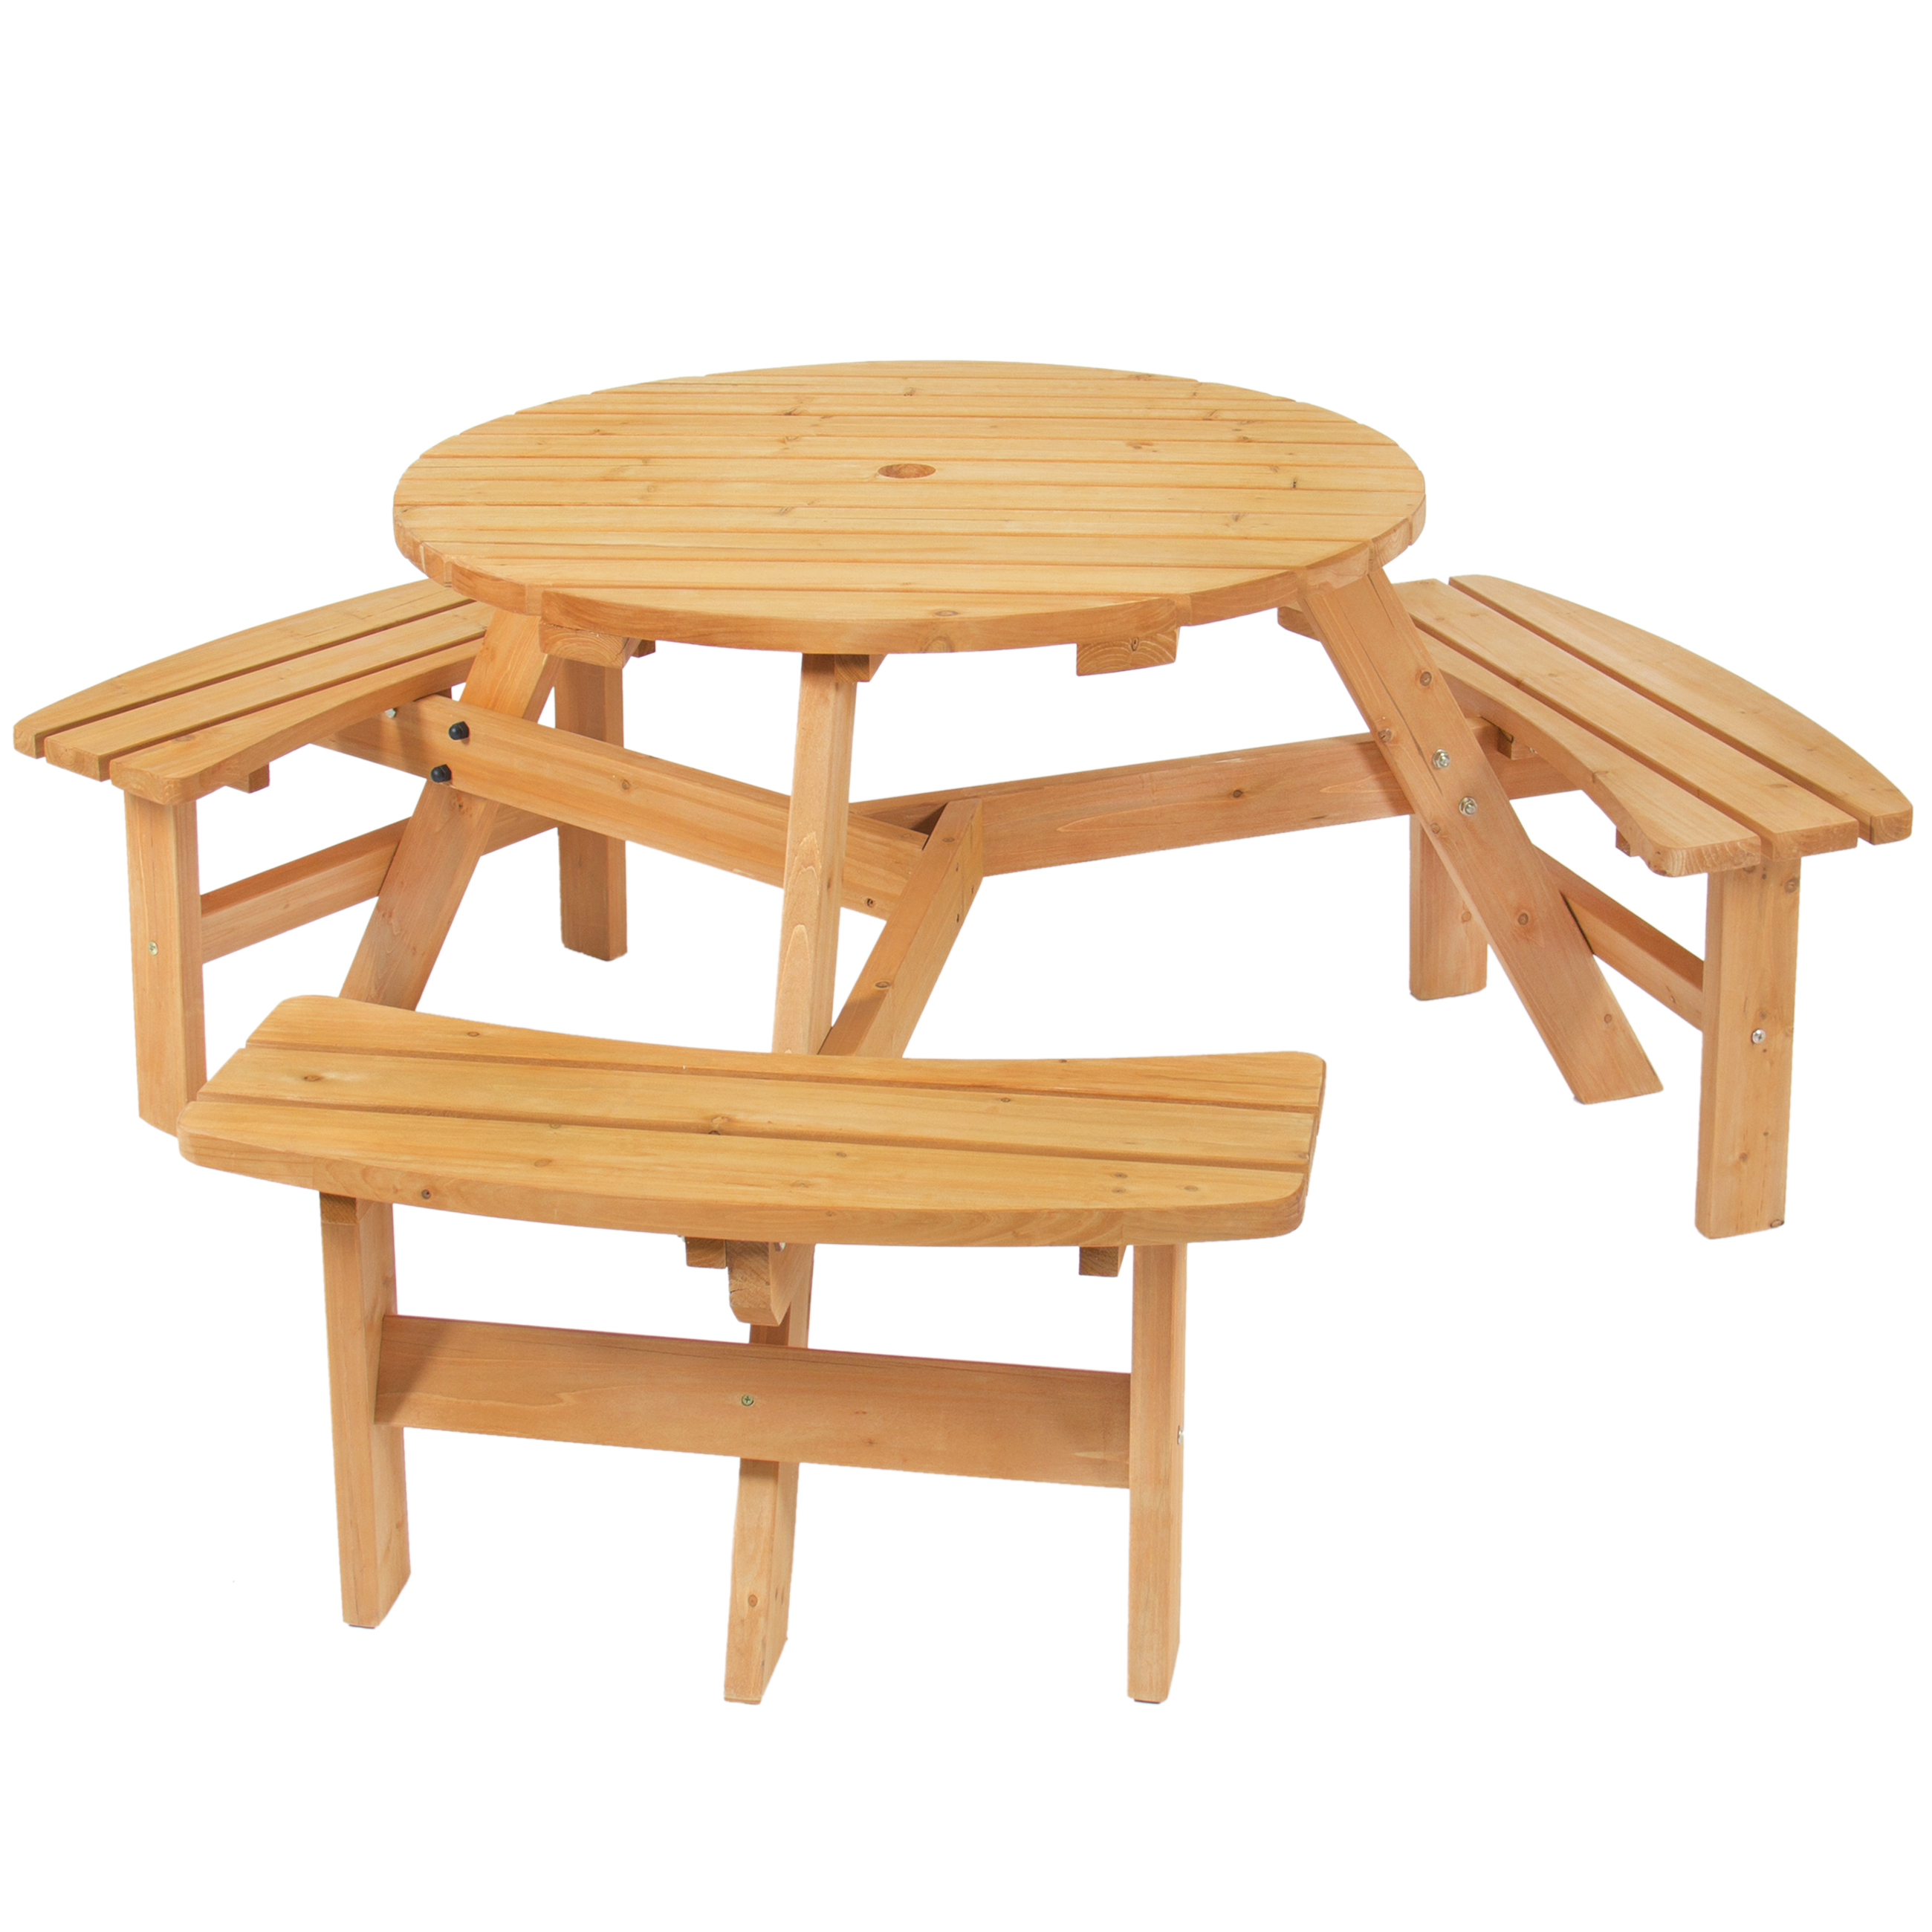 Best Choice Products 6 Person Outdoor Wood Picnic Table W/ Natural Finish    Brown